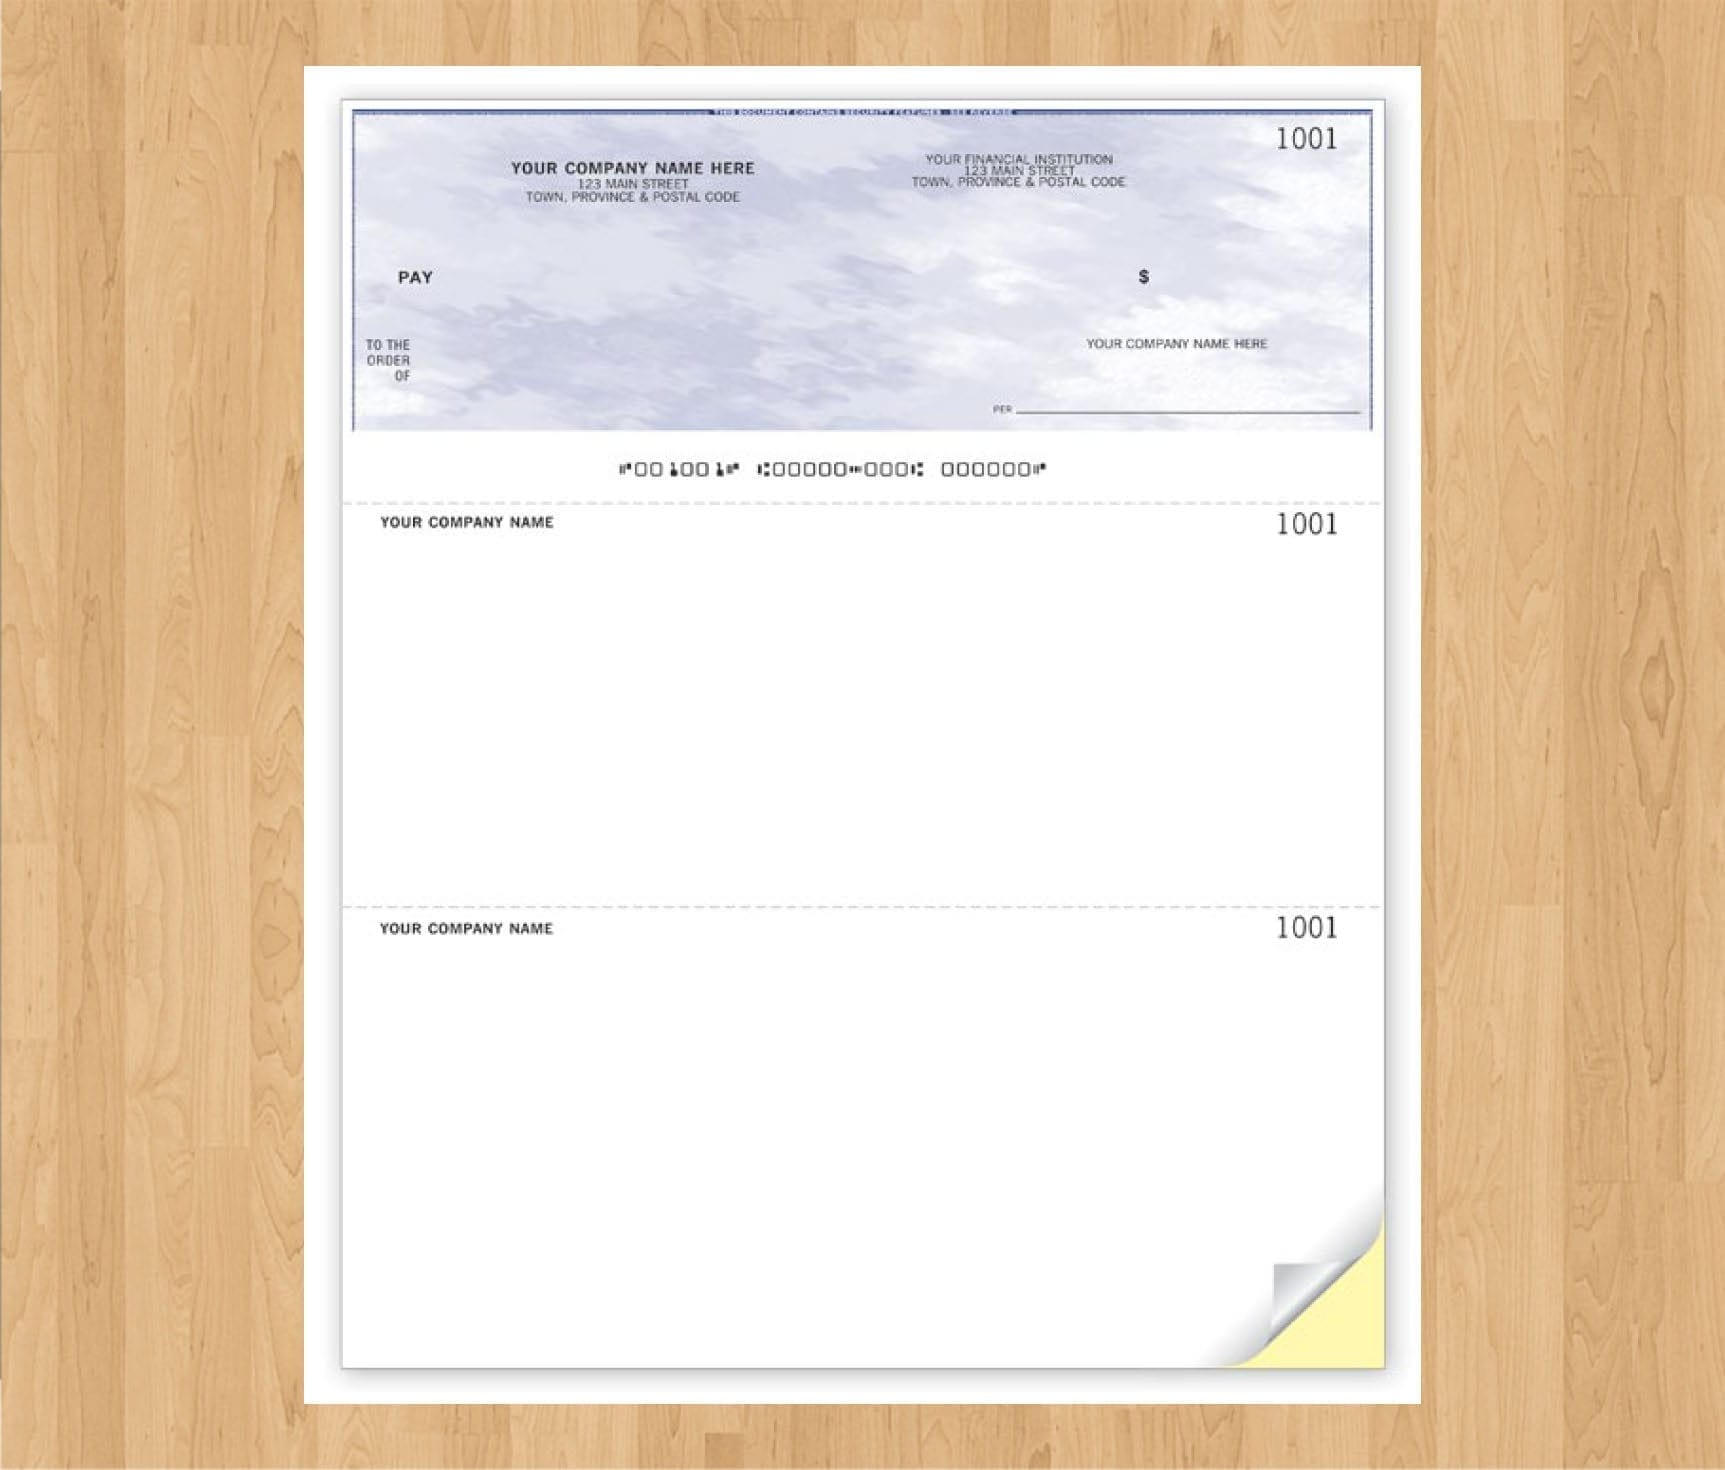 Computer Cheque Top